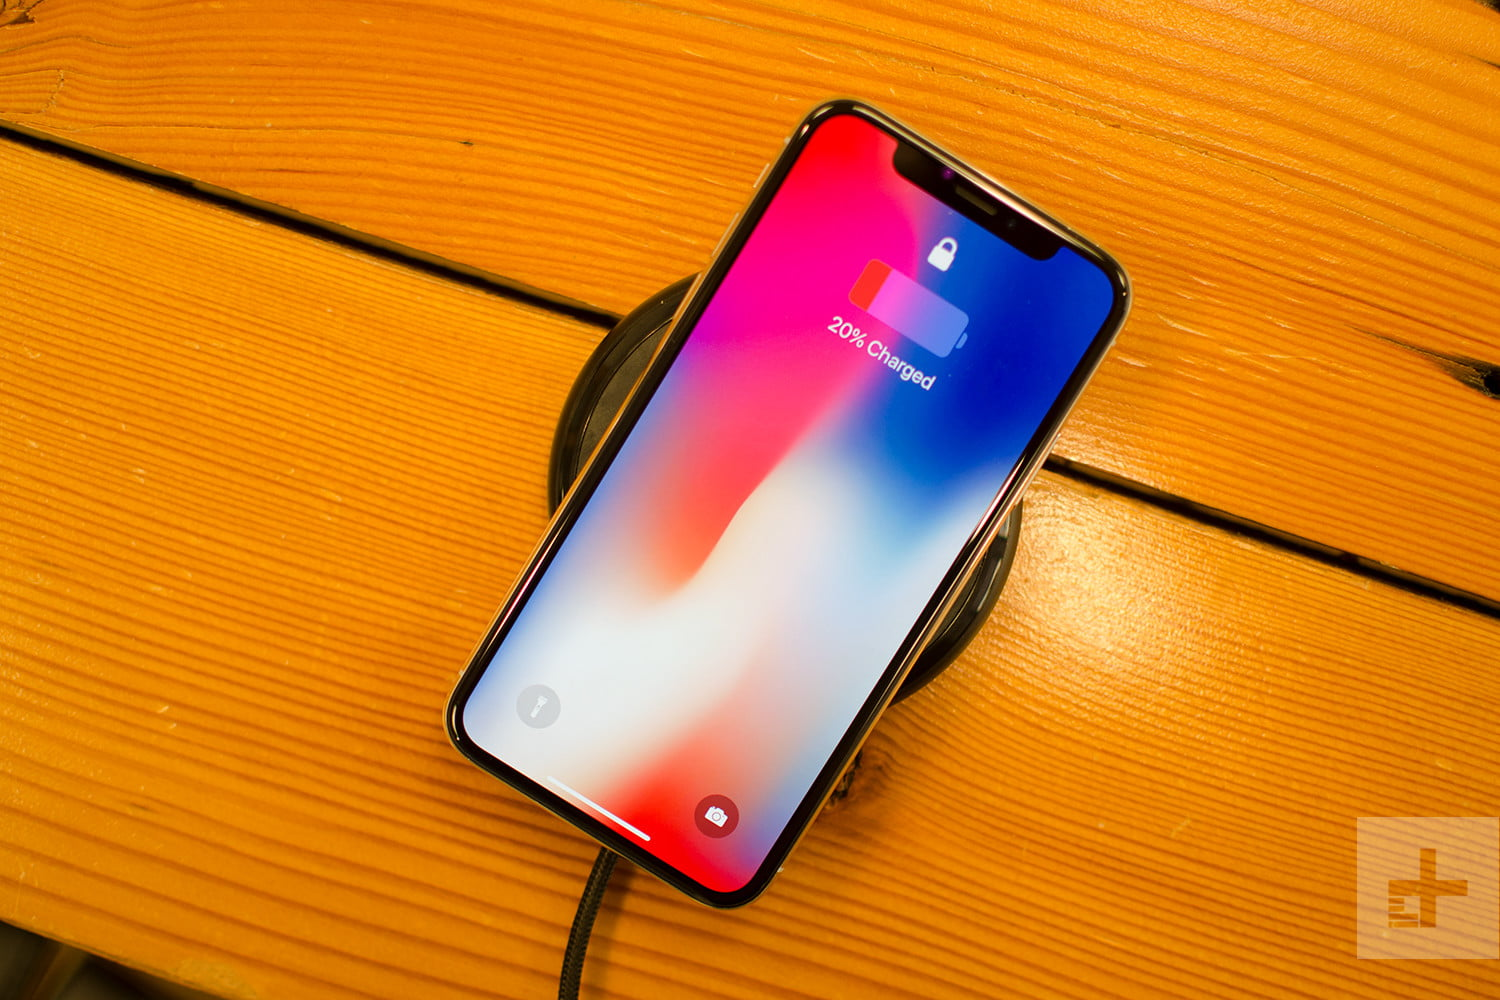 Apple Iphone X Plus News Rumors Specs Everything We